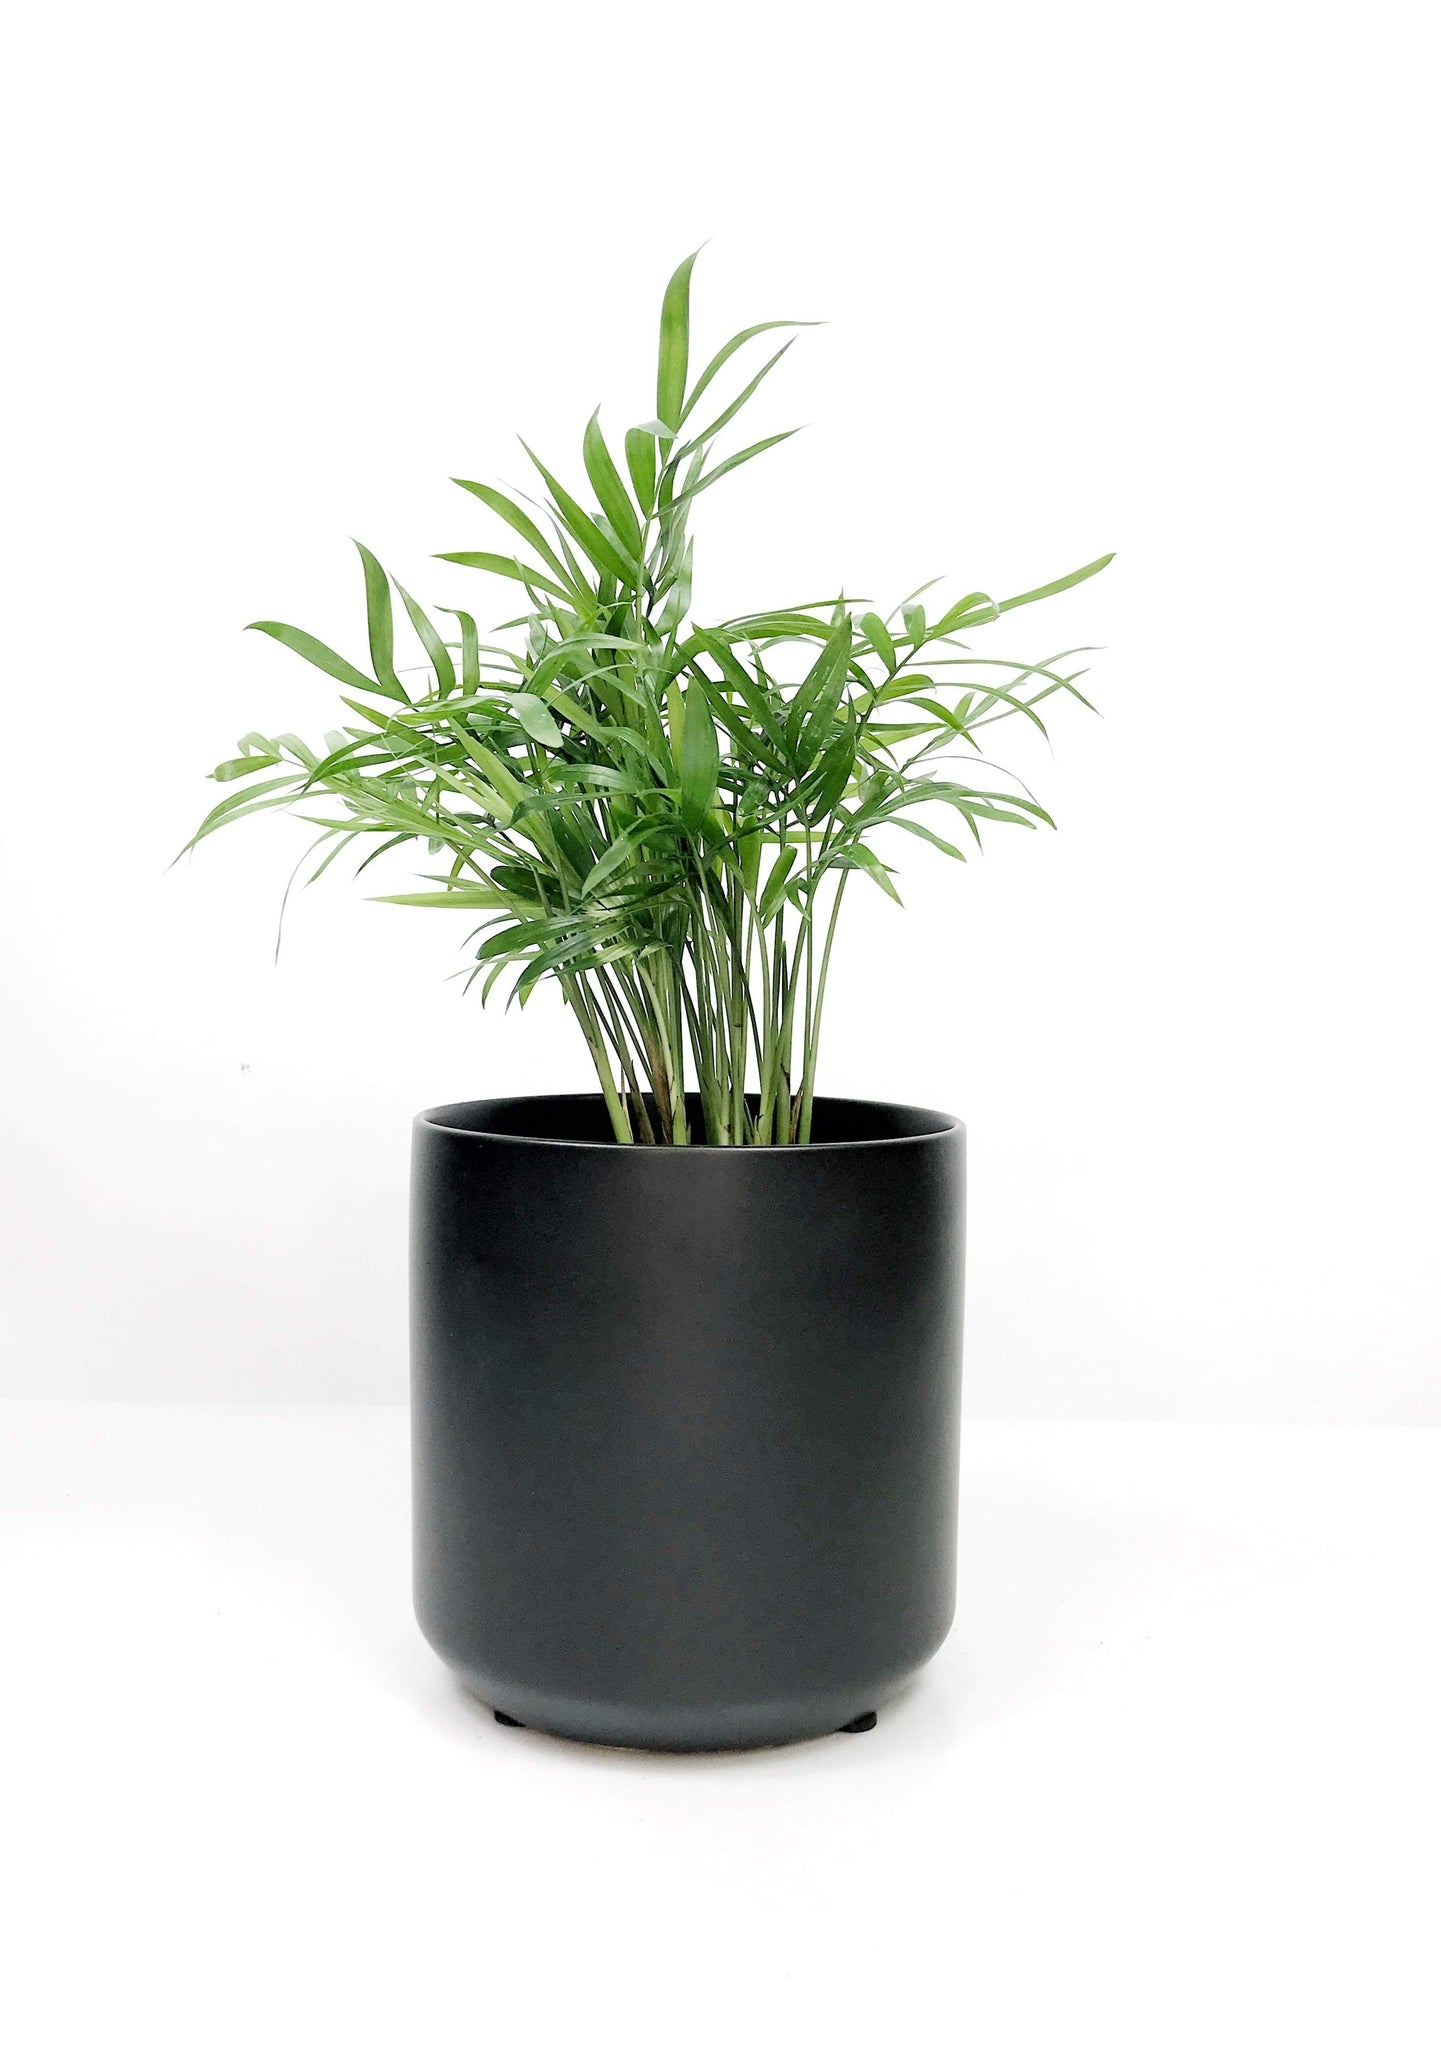 Indoor plant delivery Melbourne | potted plants delivered same day melbourne | gift plants | house plants | office plants